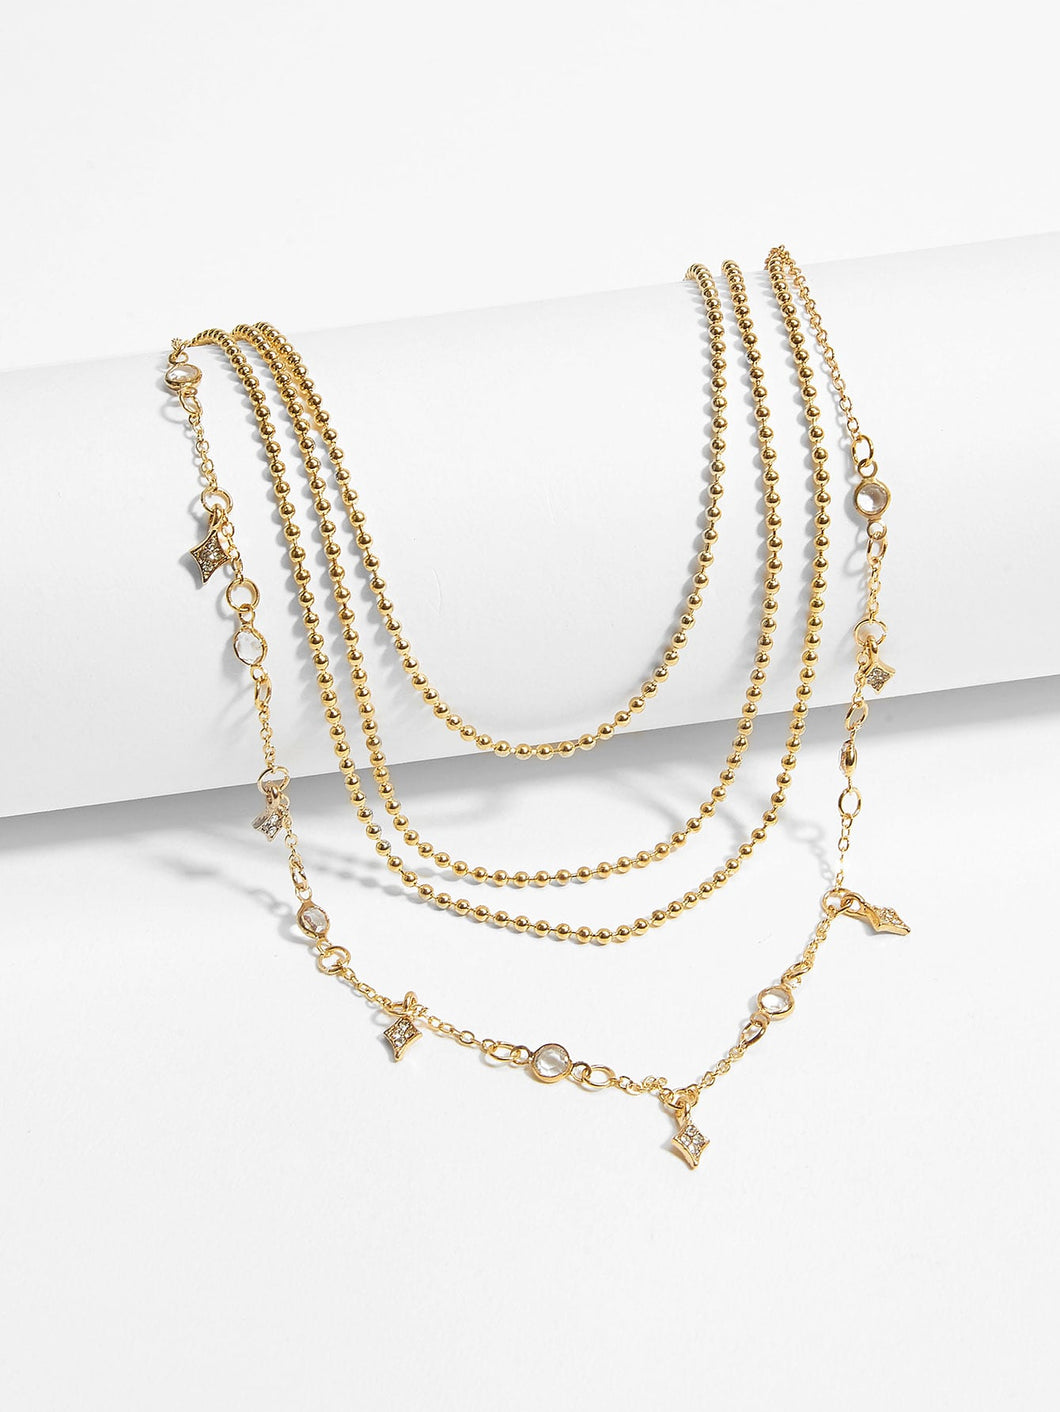 Didi Royale  | Accessories | Cora Rhinestone Charm Layered Beaded Necklace